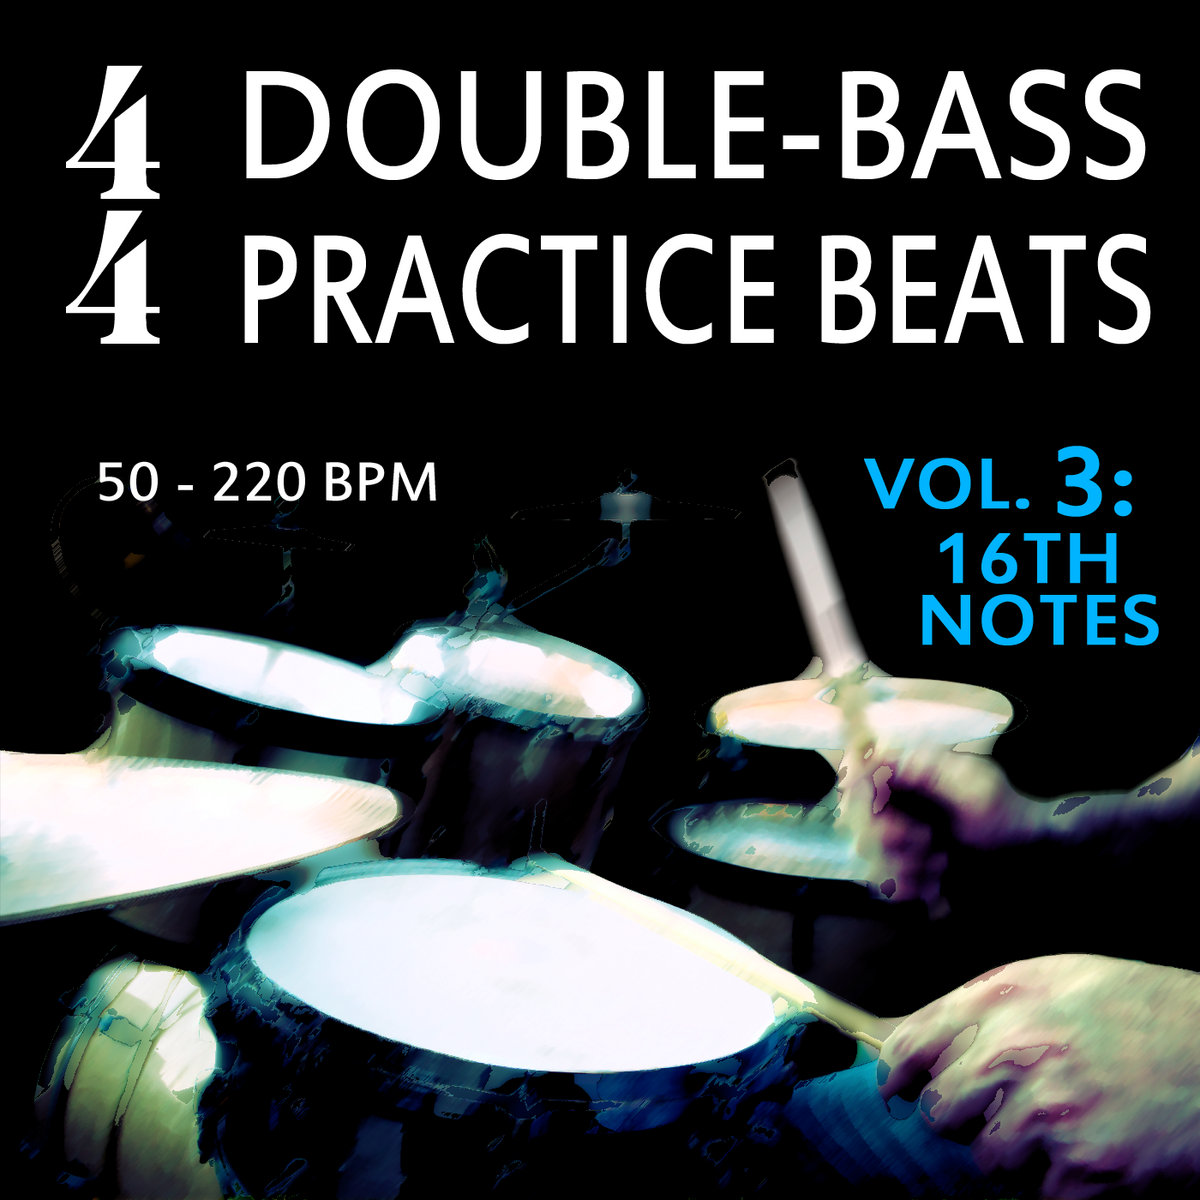 F Action Alternative Rock It Up Vol 5 Free: 4/4 Double-Bass Practice Beats, Vol. 3